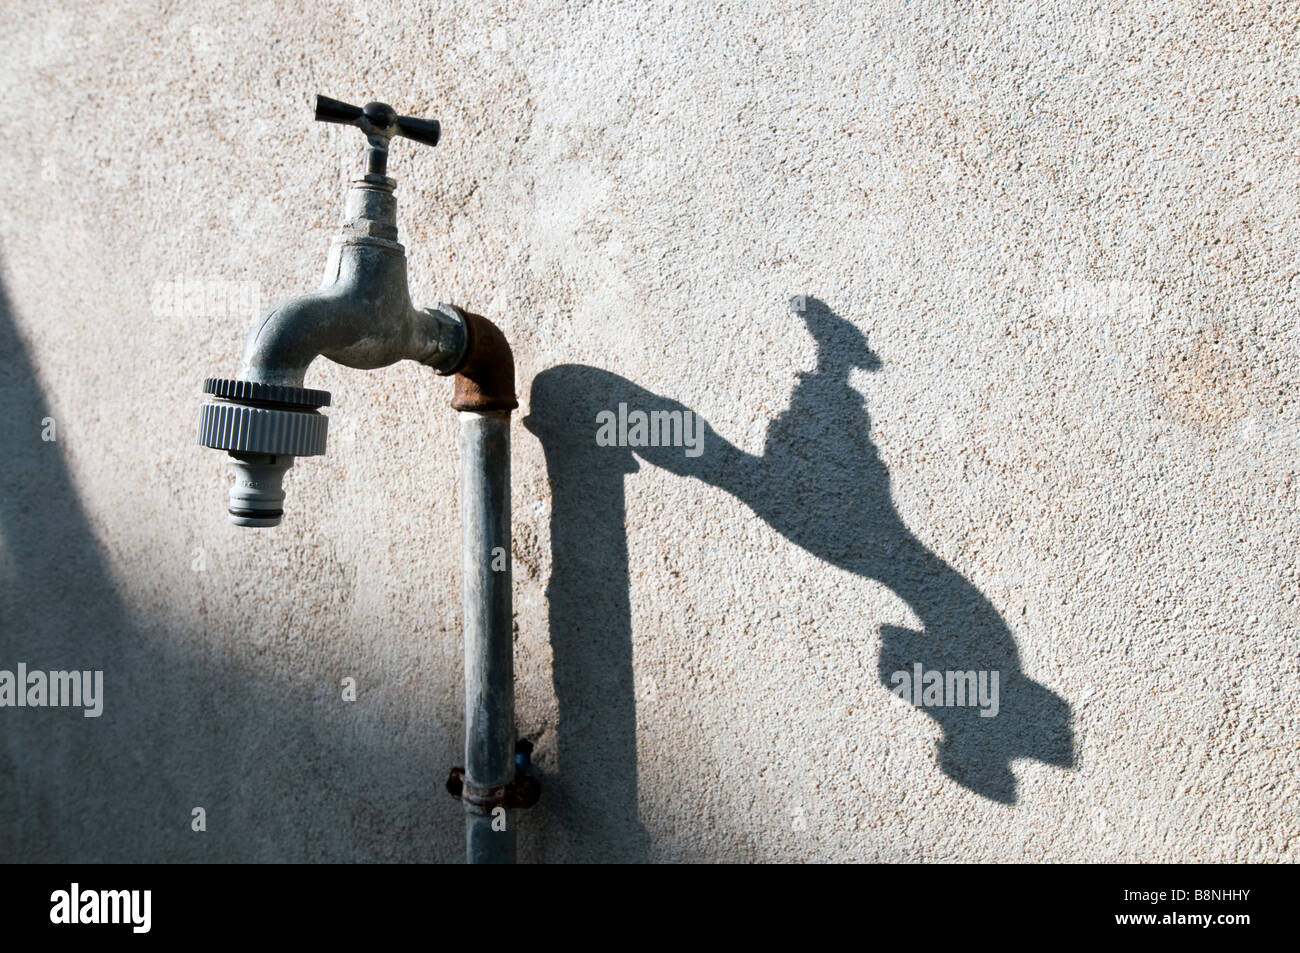 Good Outside Water Tap And Shadow On Wall, France.   Stock Image